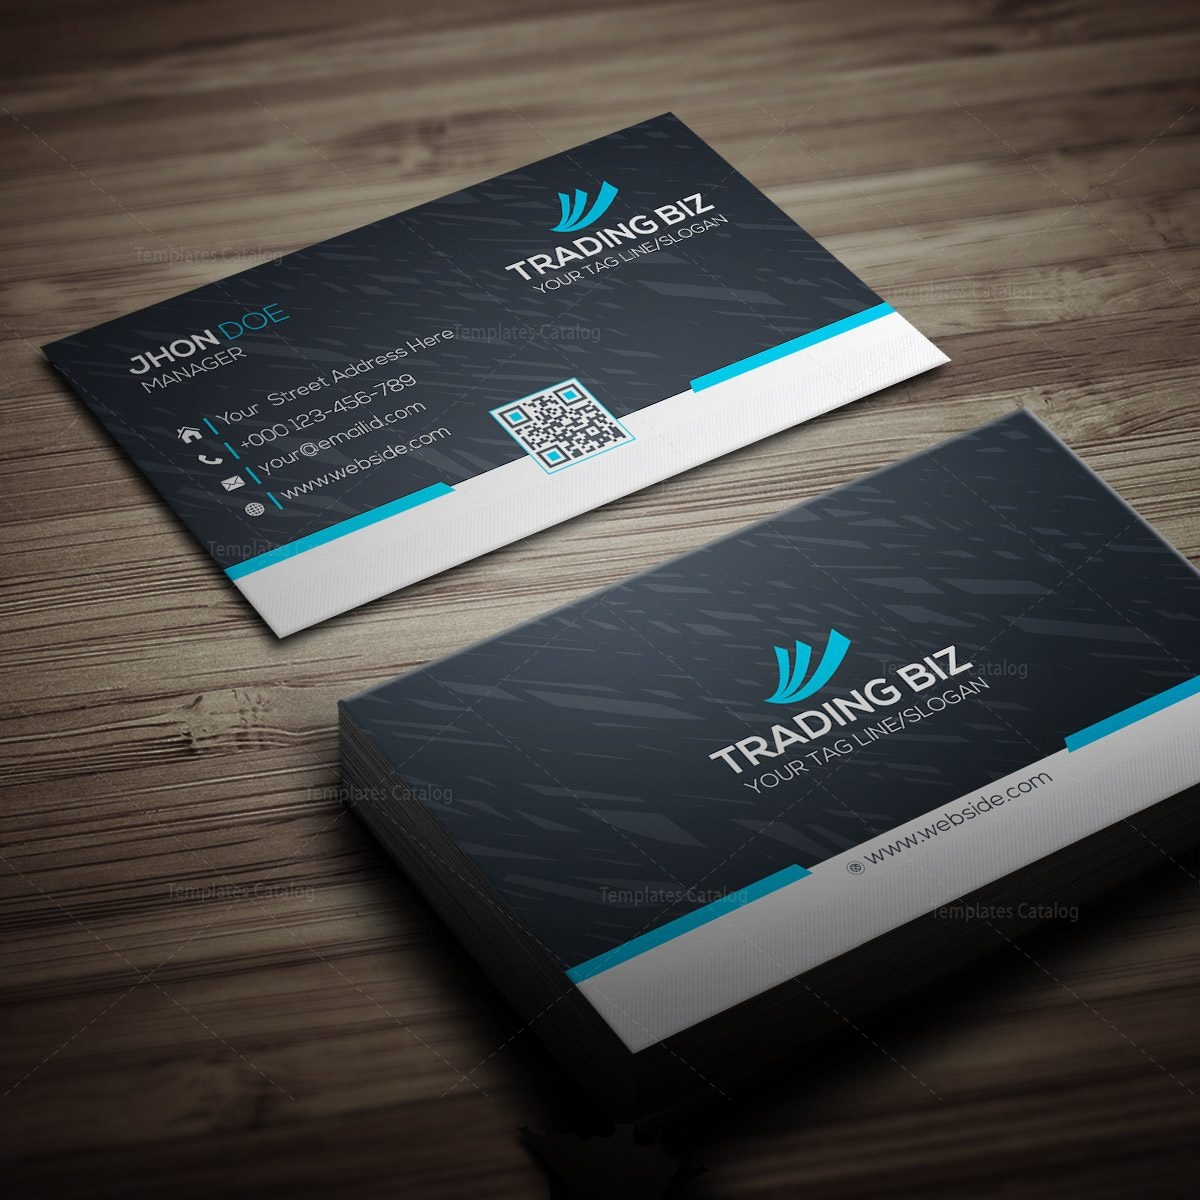 trading company business card 000269  template catalog